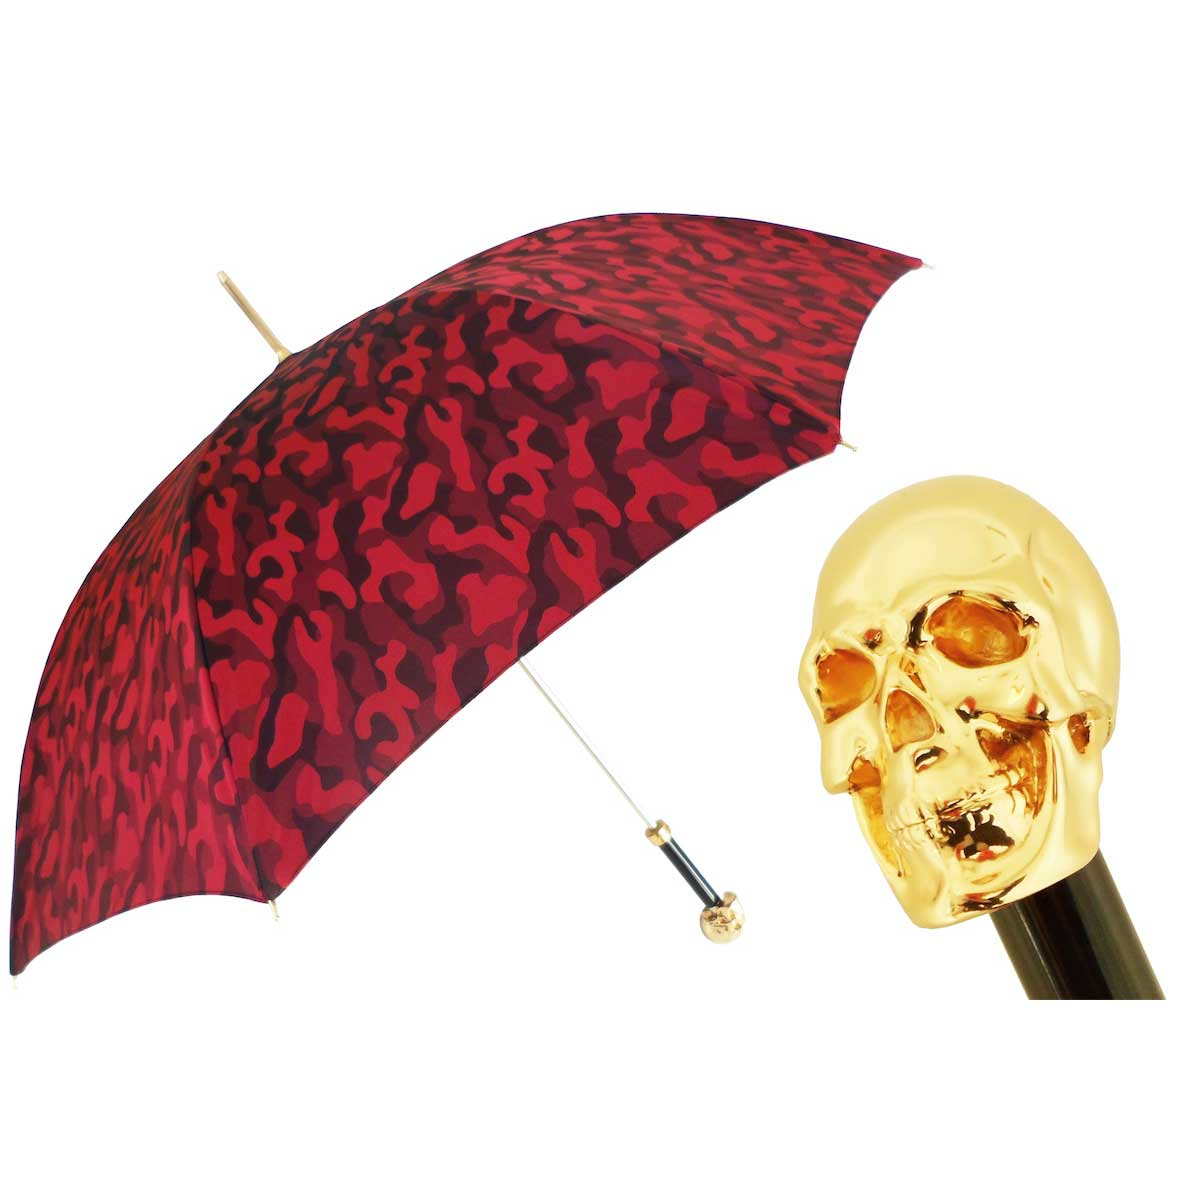 Pasotti Ombrelli Red Camouflage Umbrella - Gold Skull Handle